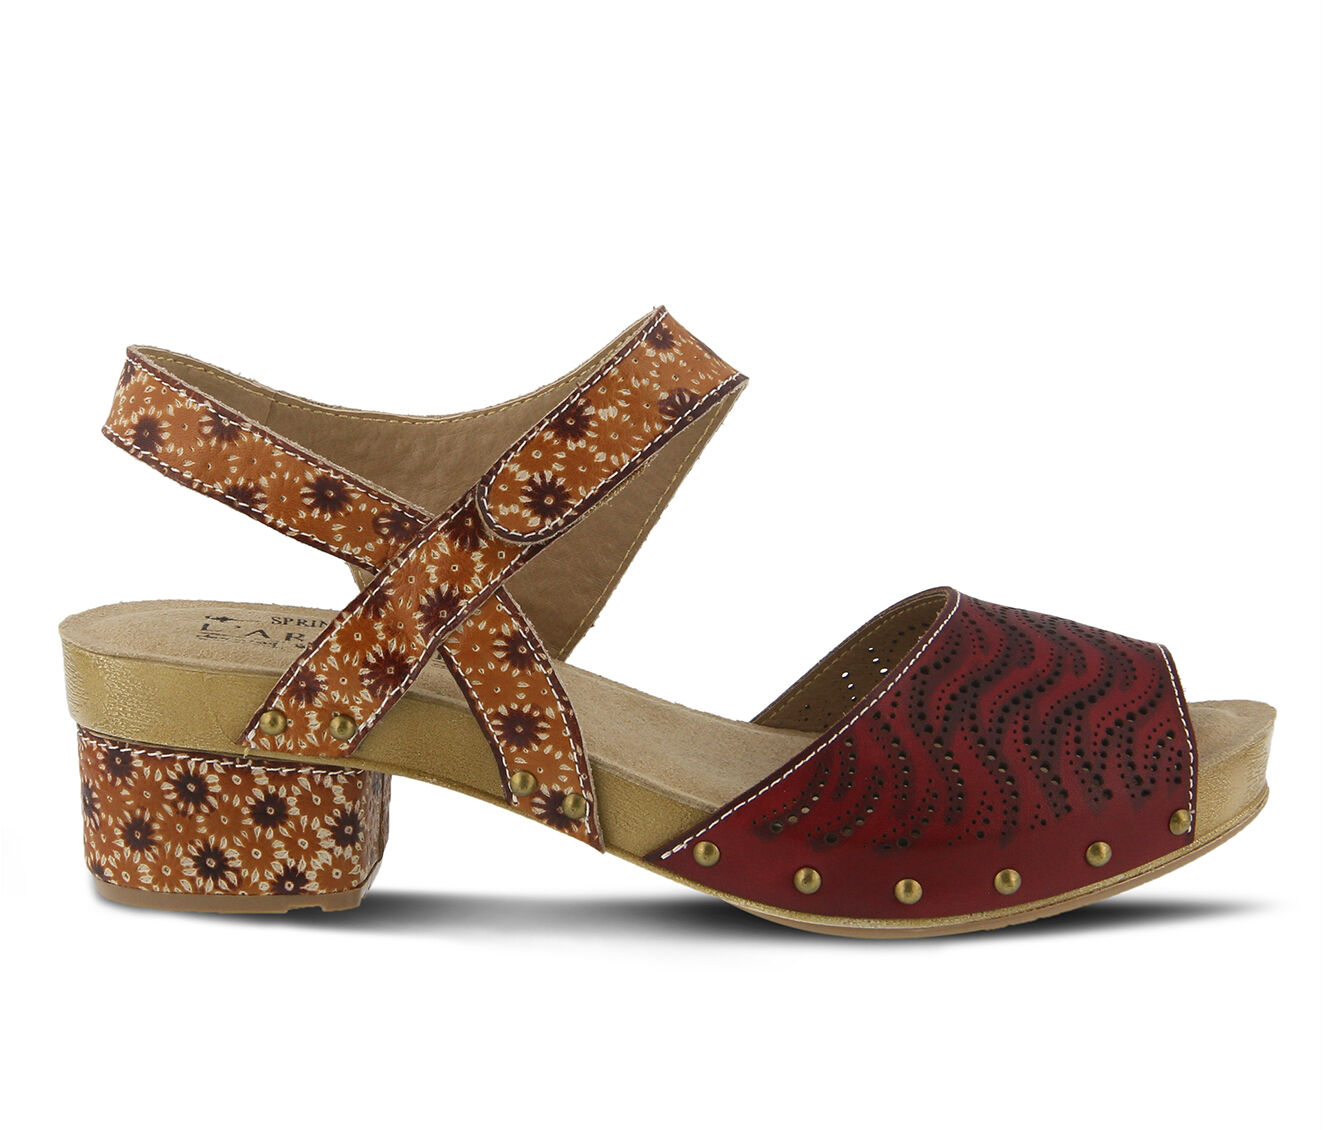 Women's L'ARTISTE Gloga Sandals Camel Multi